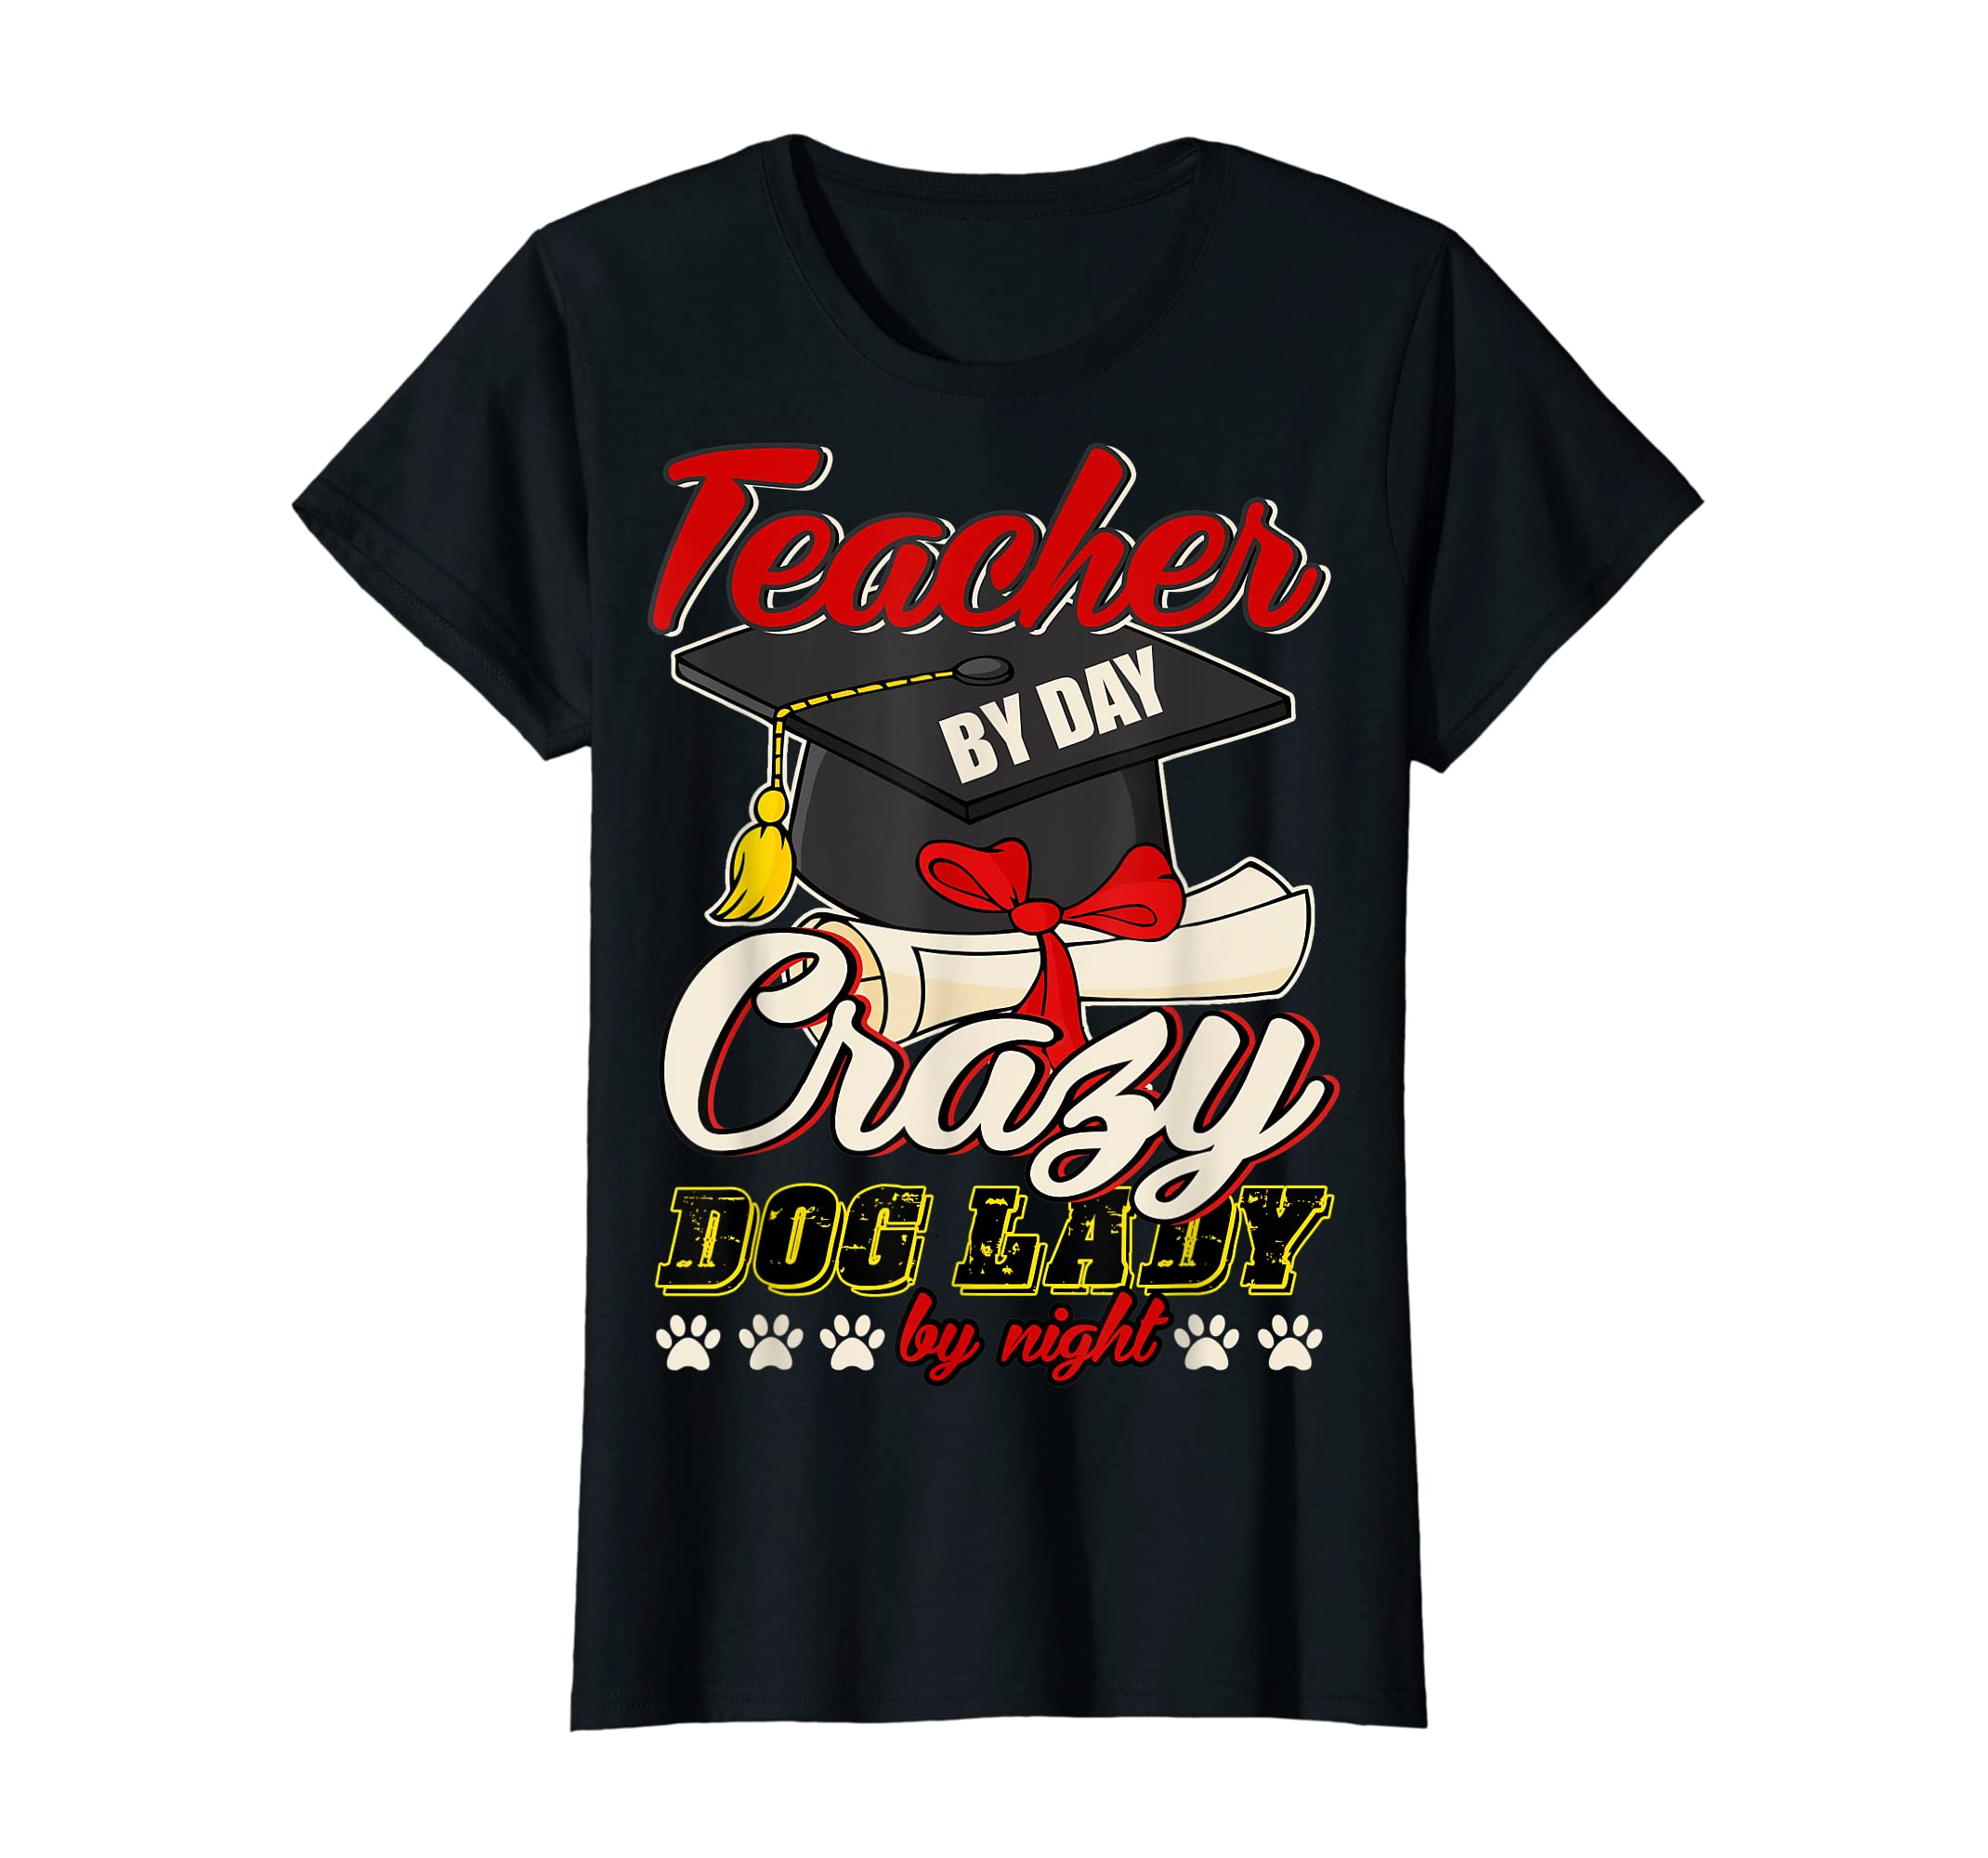 Teacher By Day T Shirt, Crazy Dog Lady By Night T Shirt-Women's T-Shirt-Black